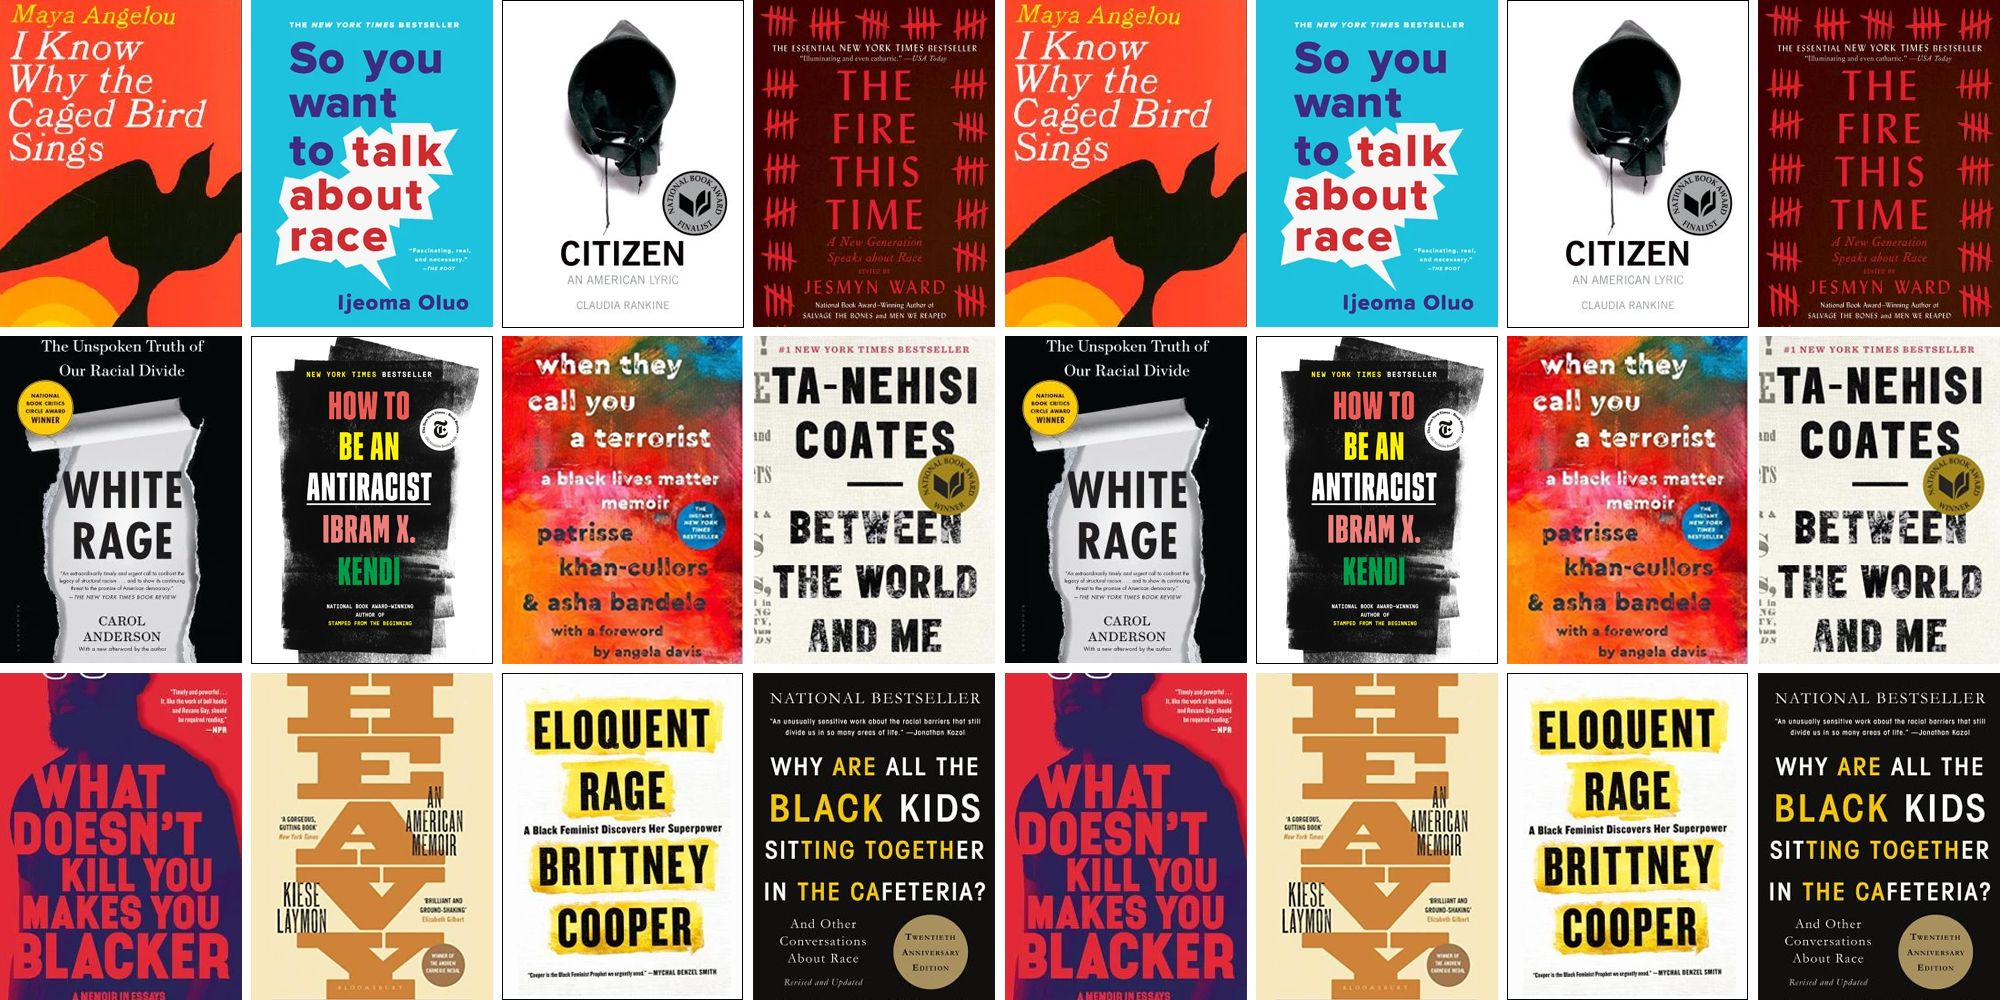 20 Best Books About Anti-Racism - Anti-Racist Reading List